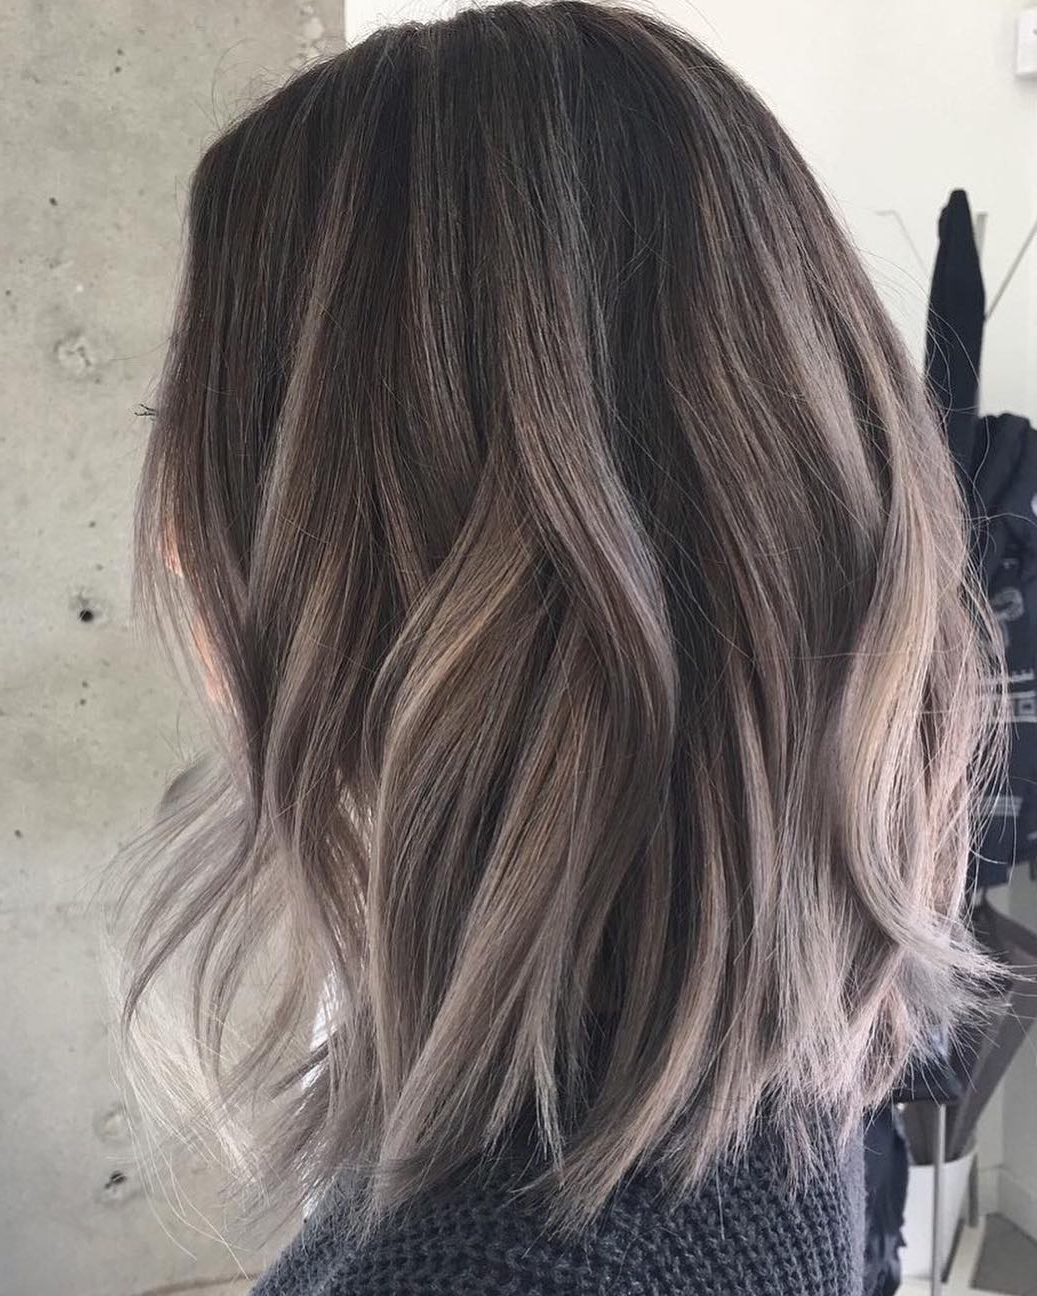 10 Medium Length Hair Color Ideas 2019 With Regard To Latest Pink Medium Haircuts (View 1 of 20)